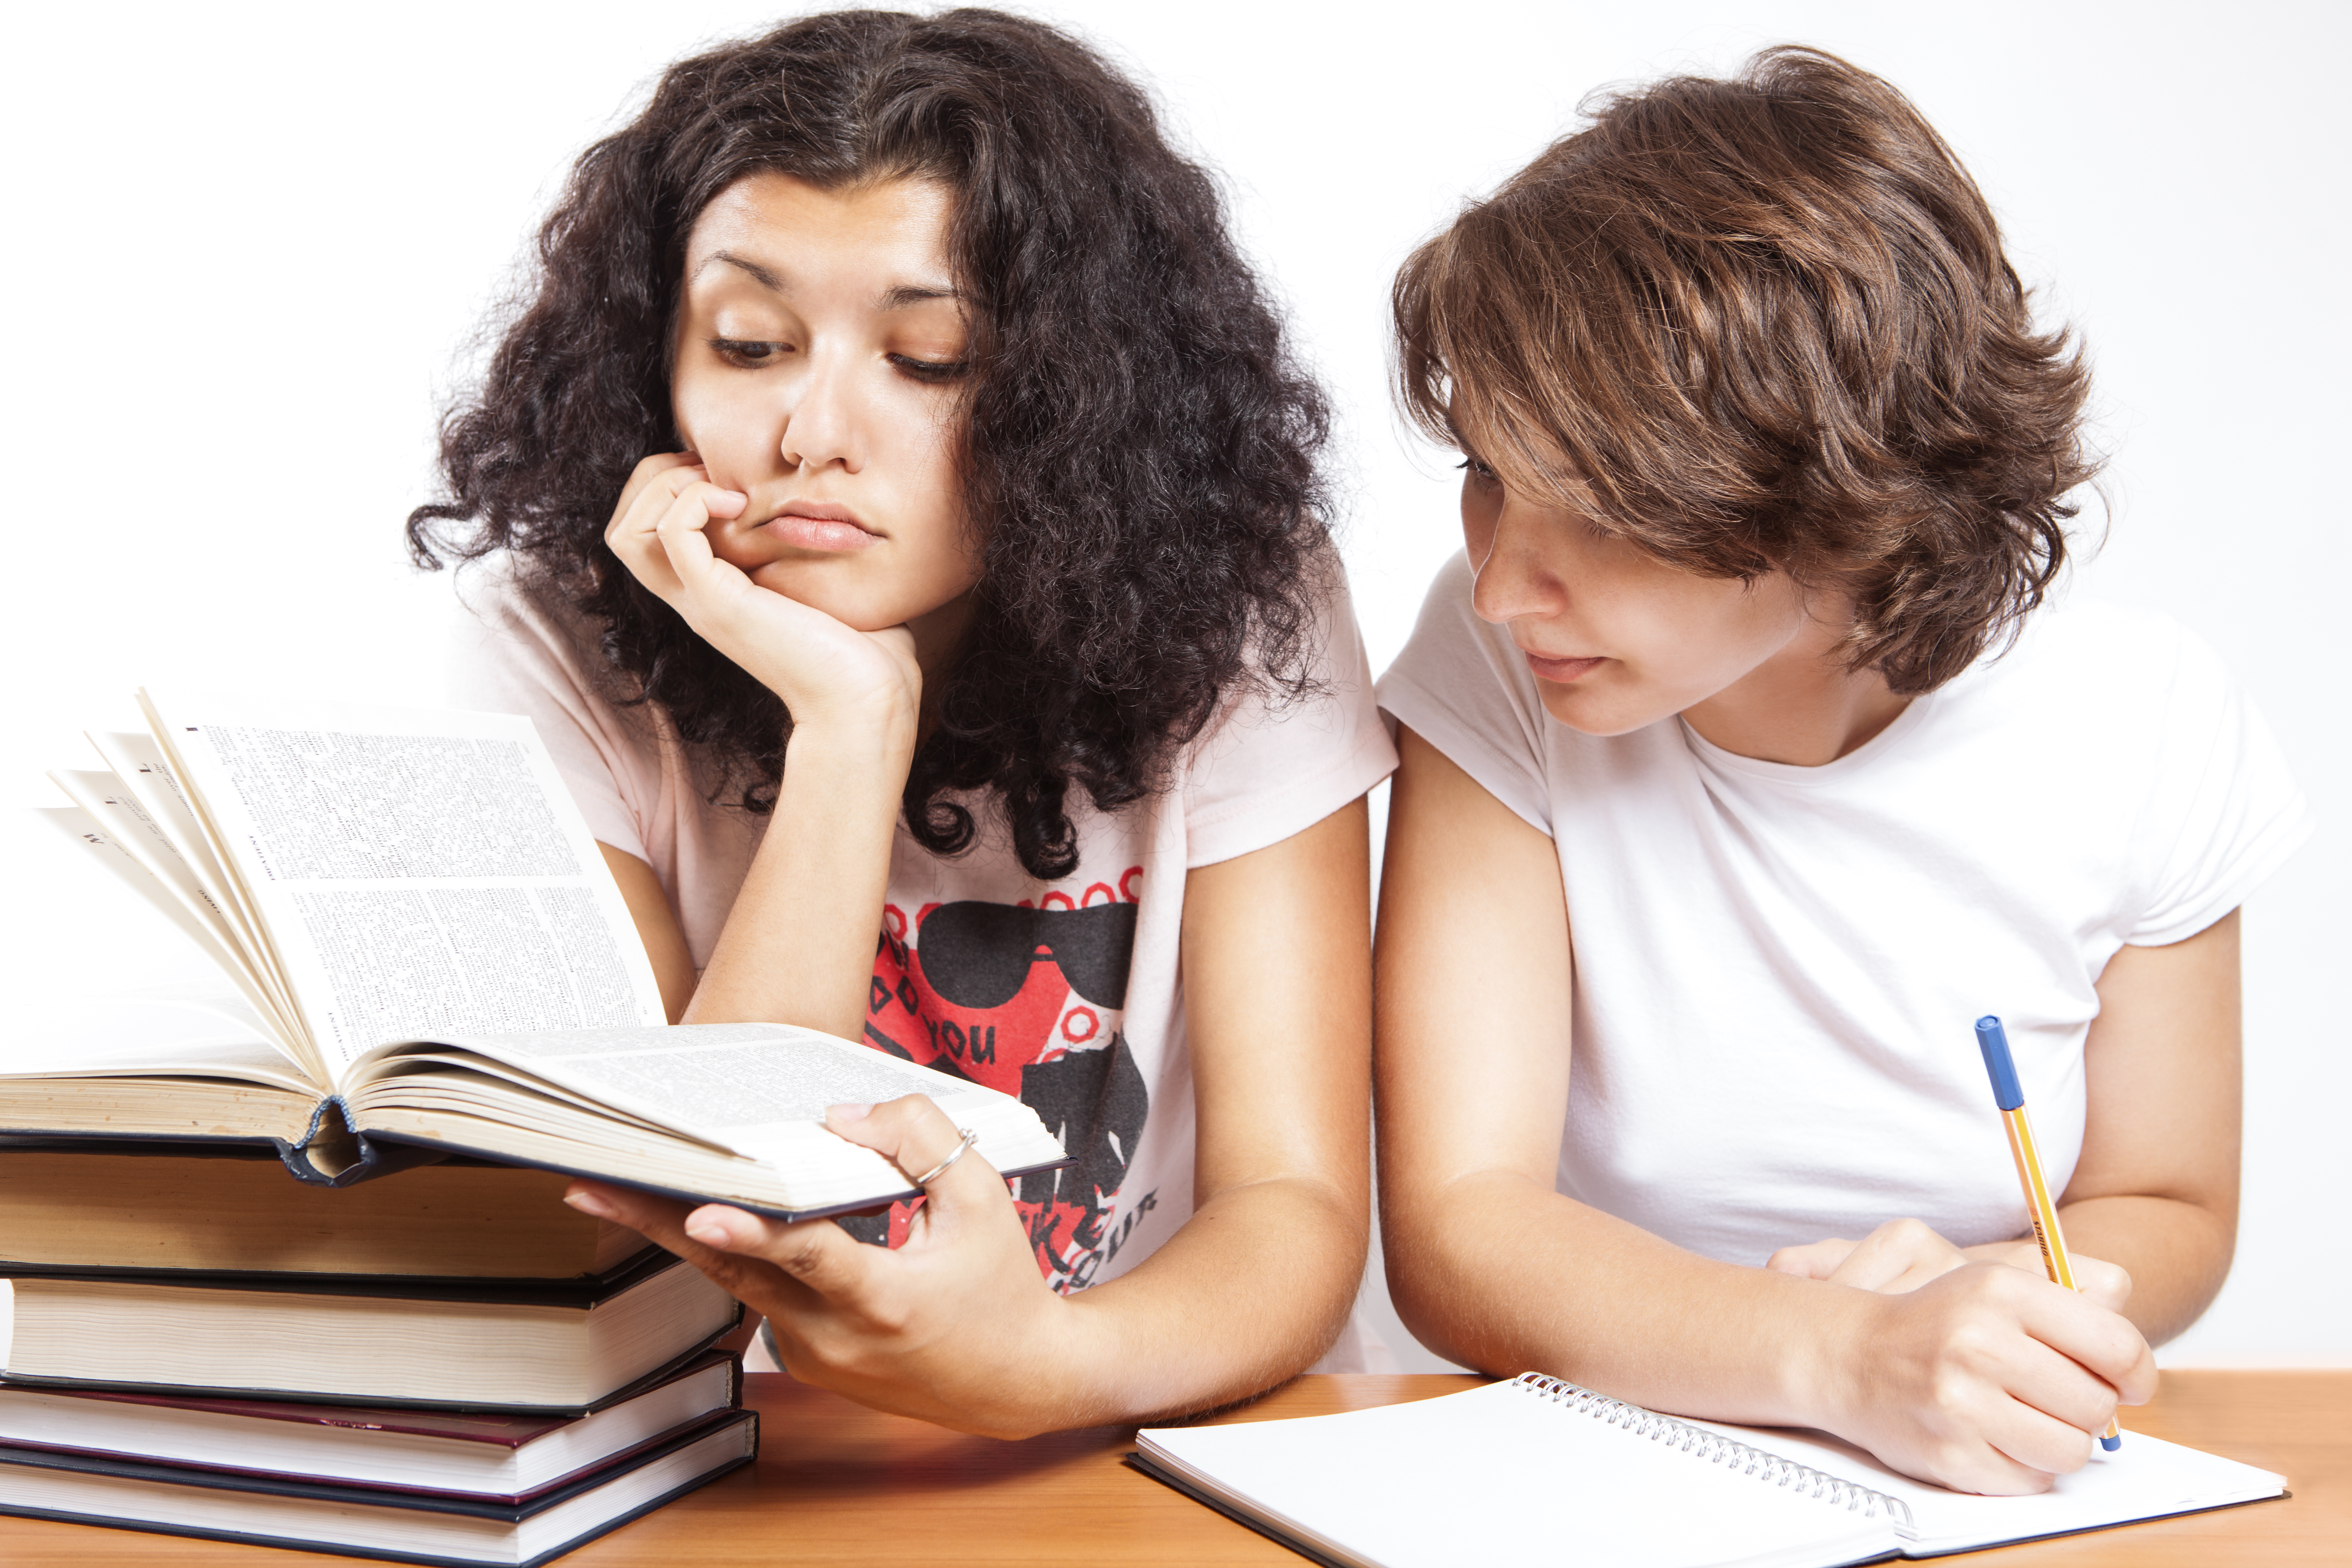 types of learners essay This article offers me an access to know more about different types of esl learners and how to i'm very grateful to you for providing us the helpful essay.